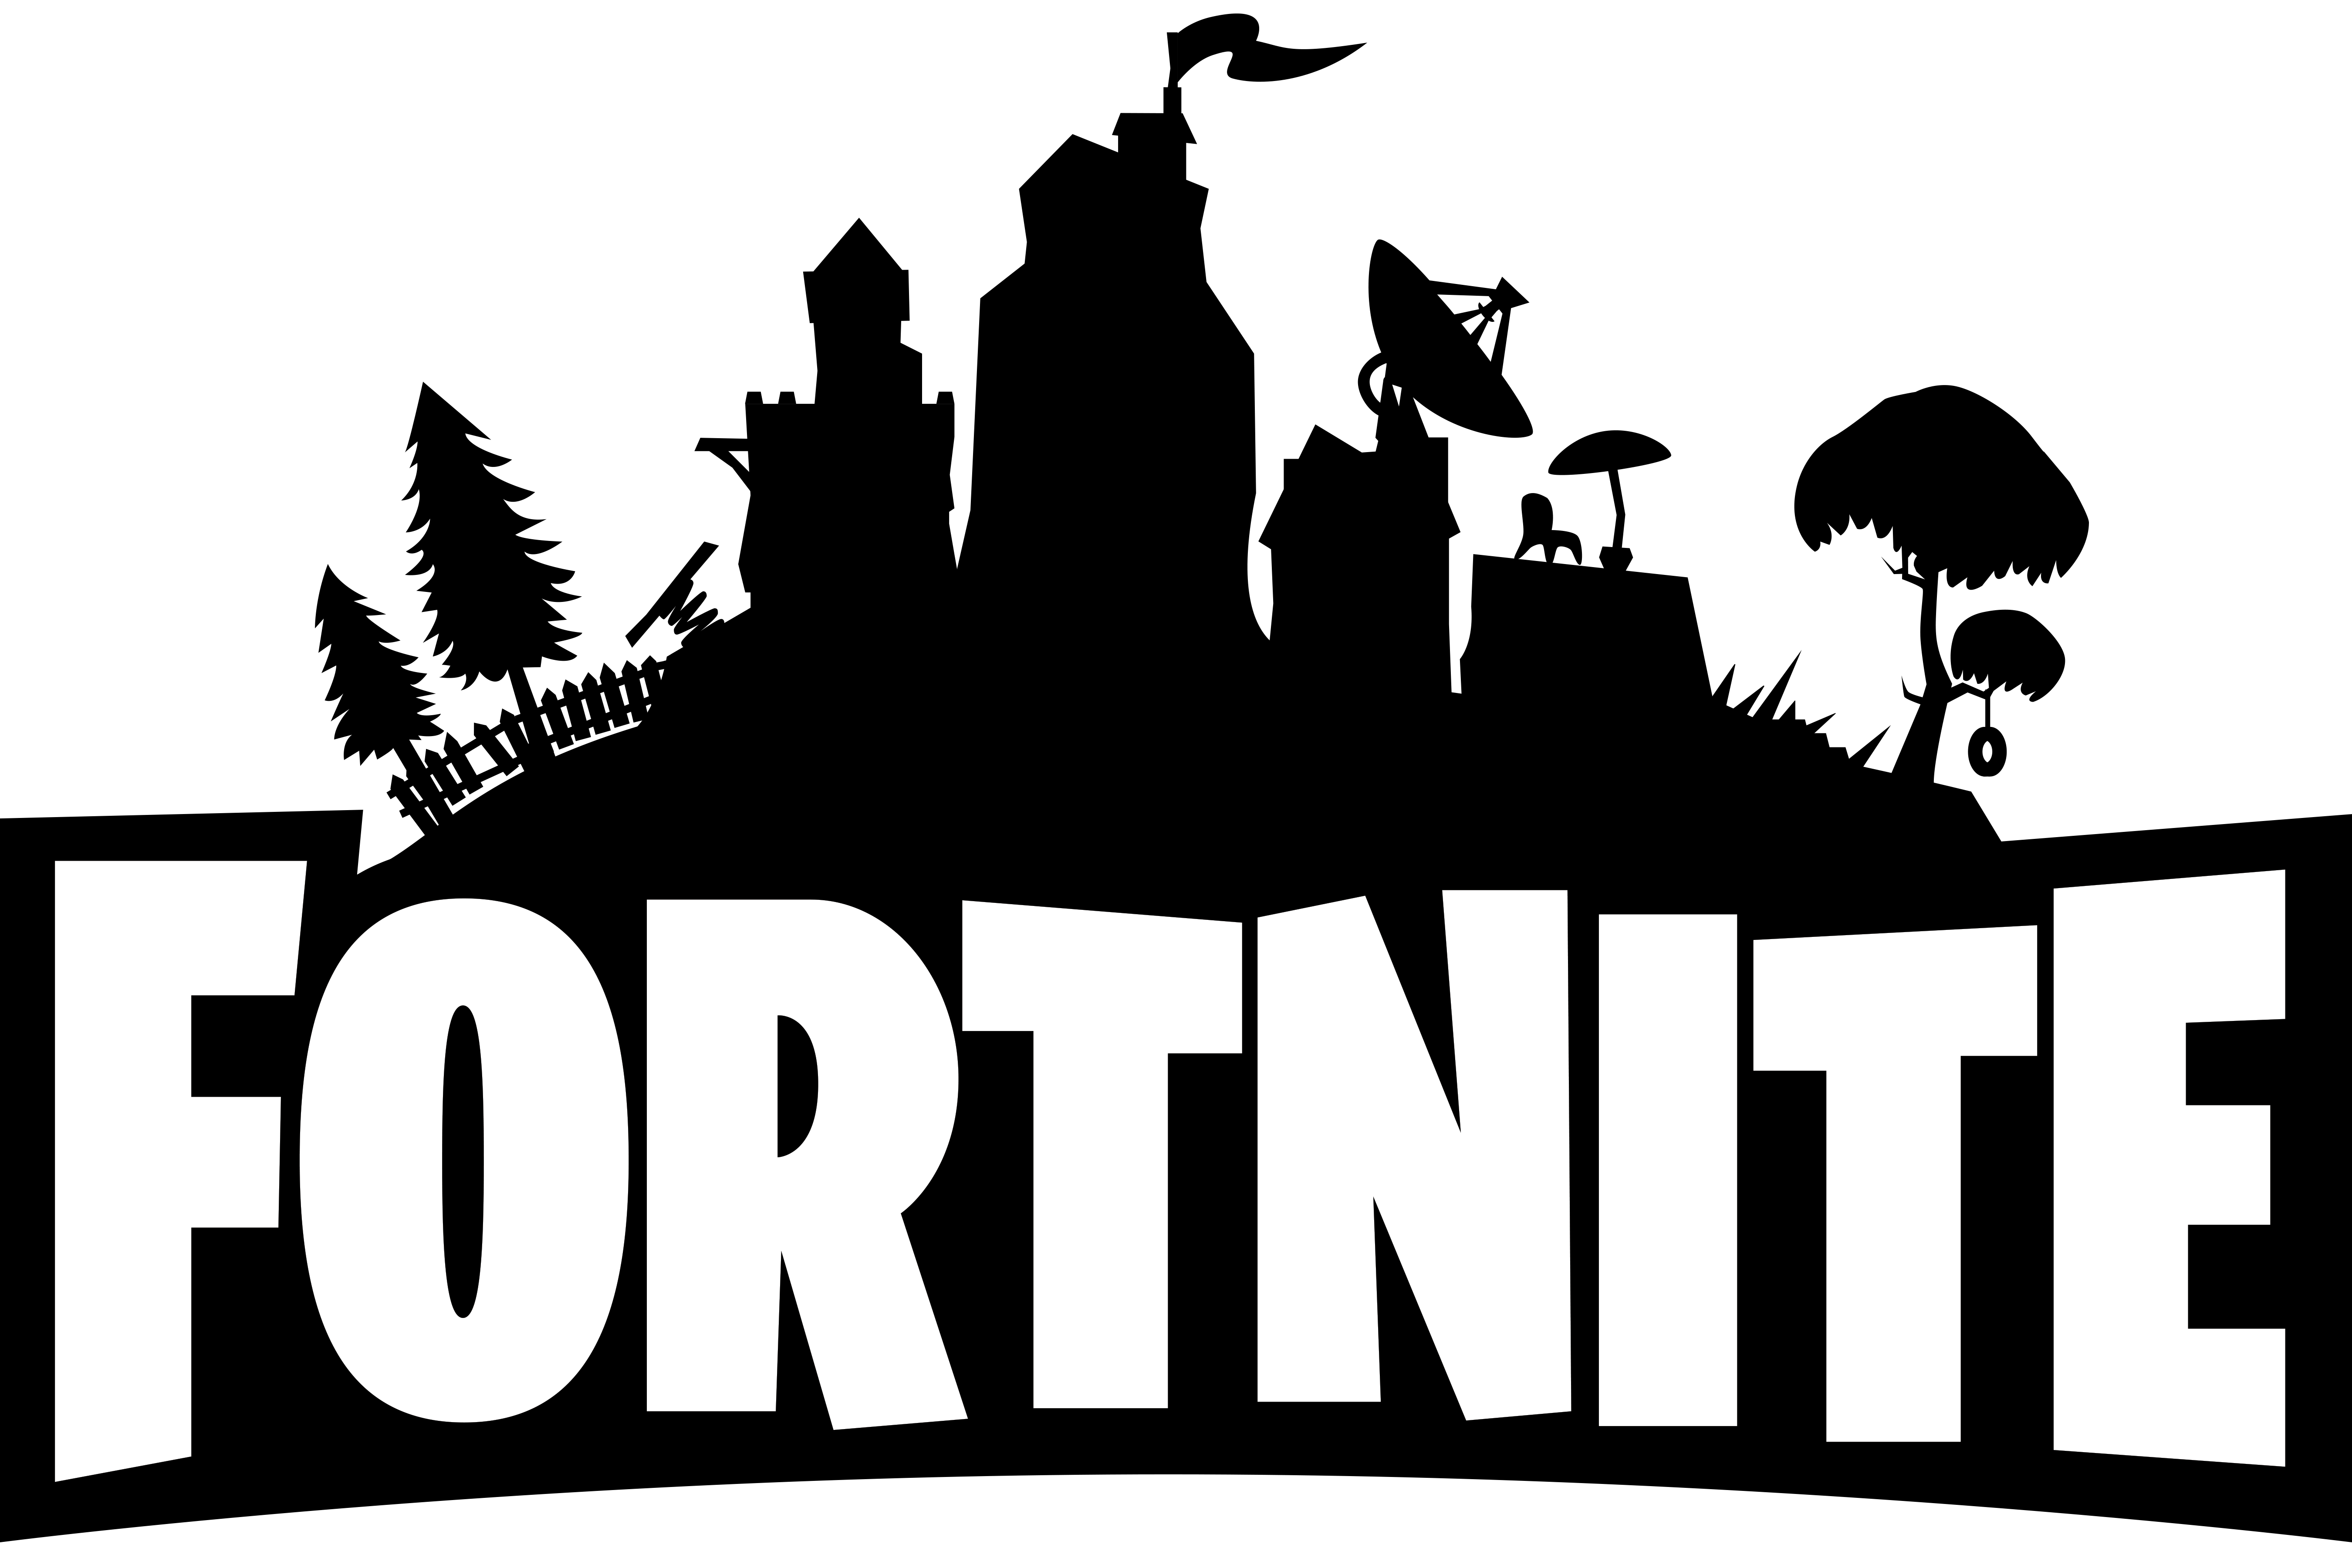 5400x3600 Fortnite 5k Retina Ultra HD Wallpaper and Background Image ...